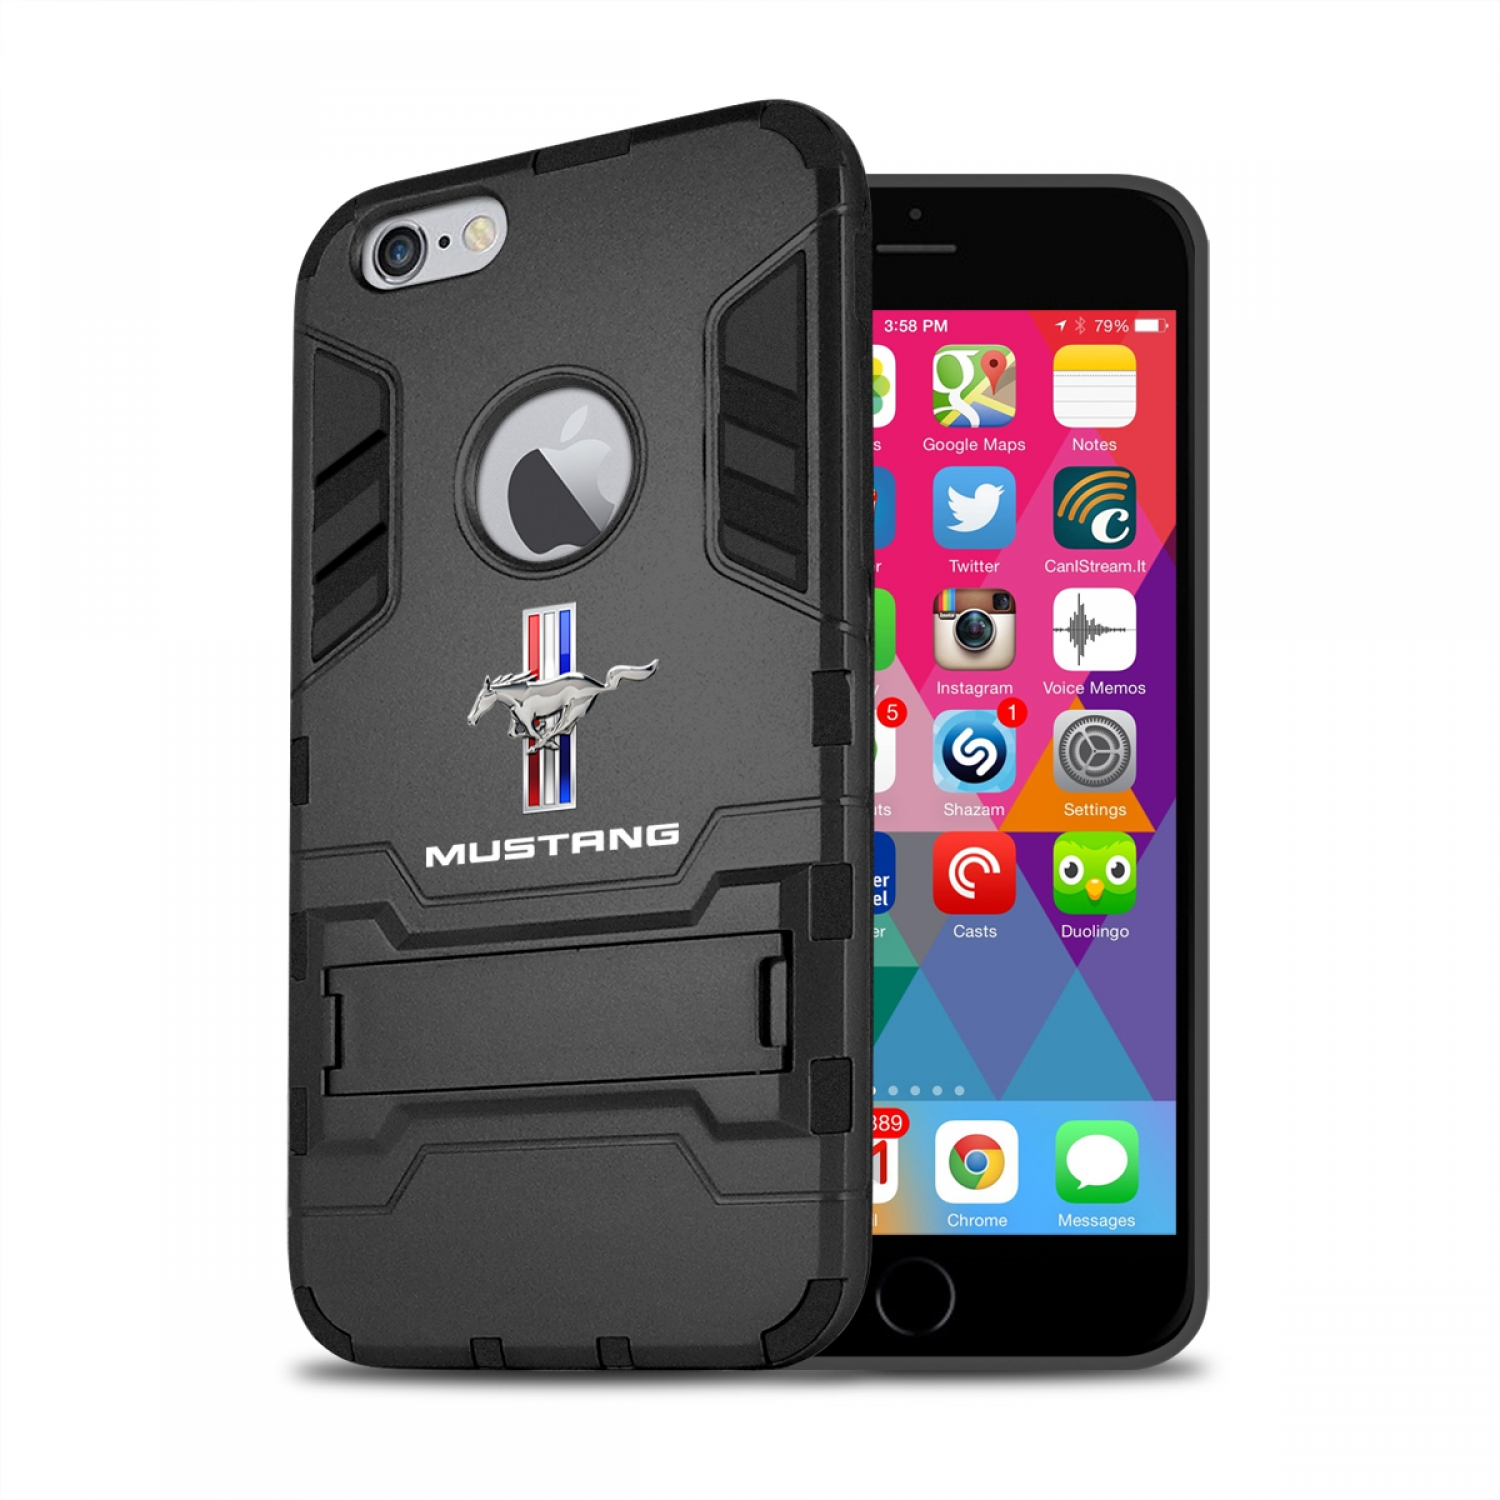 Ford Mustang Tri-Bar iPhone 6 6s Shockproof TPU ABS Hybrid Black Phone Case